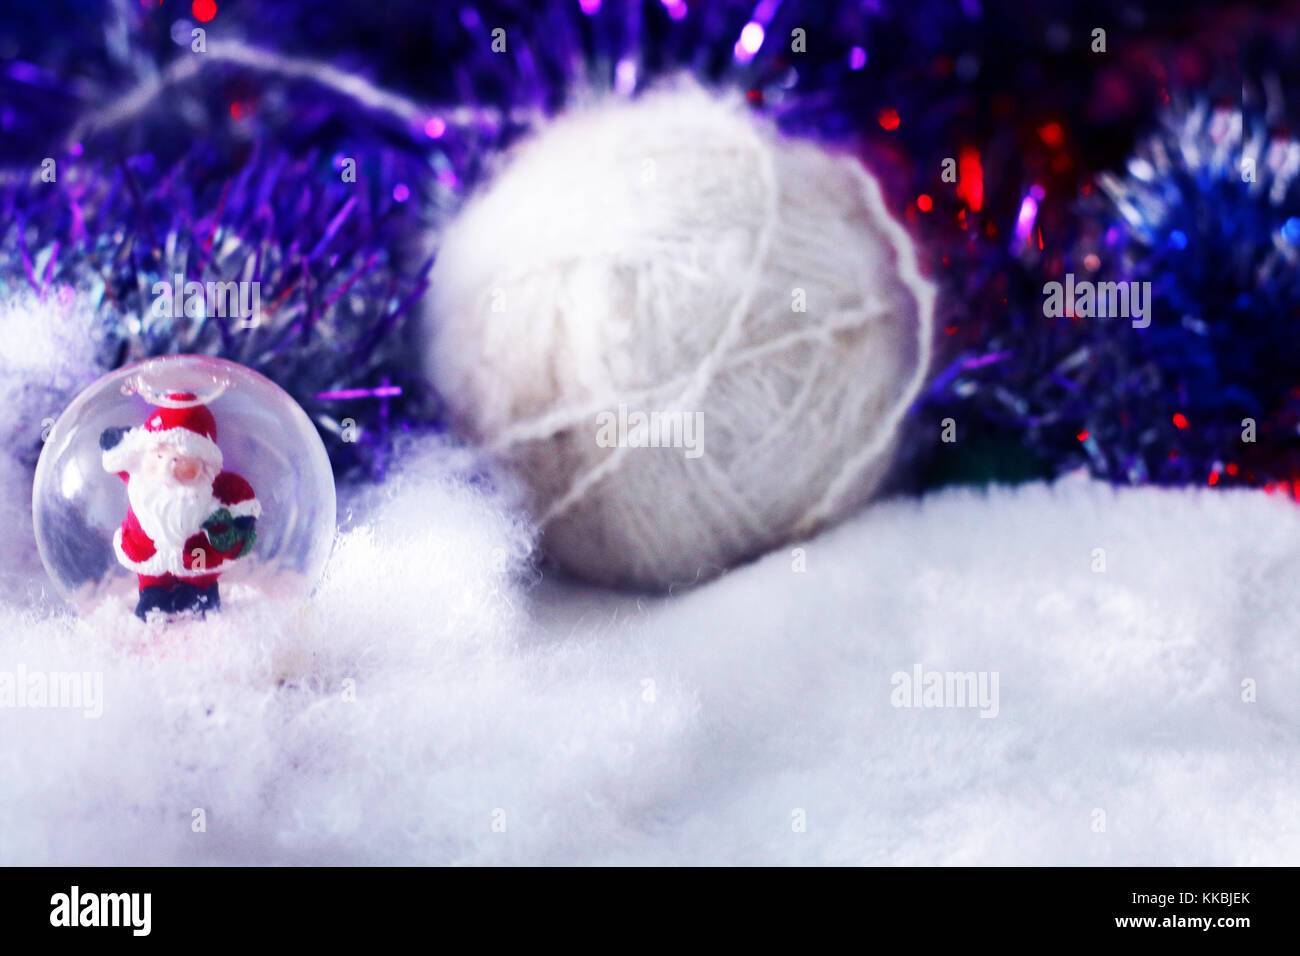 3c9e23925cb89 Christmas and new year background with santa claus in glass ball ...